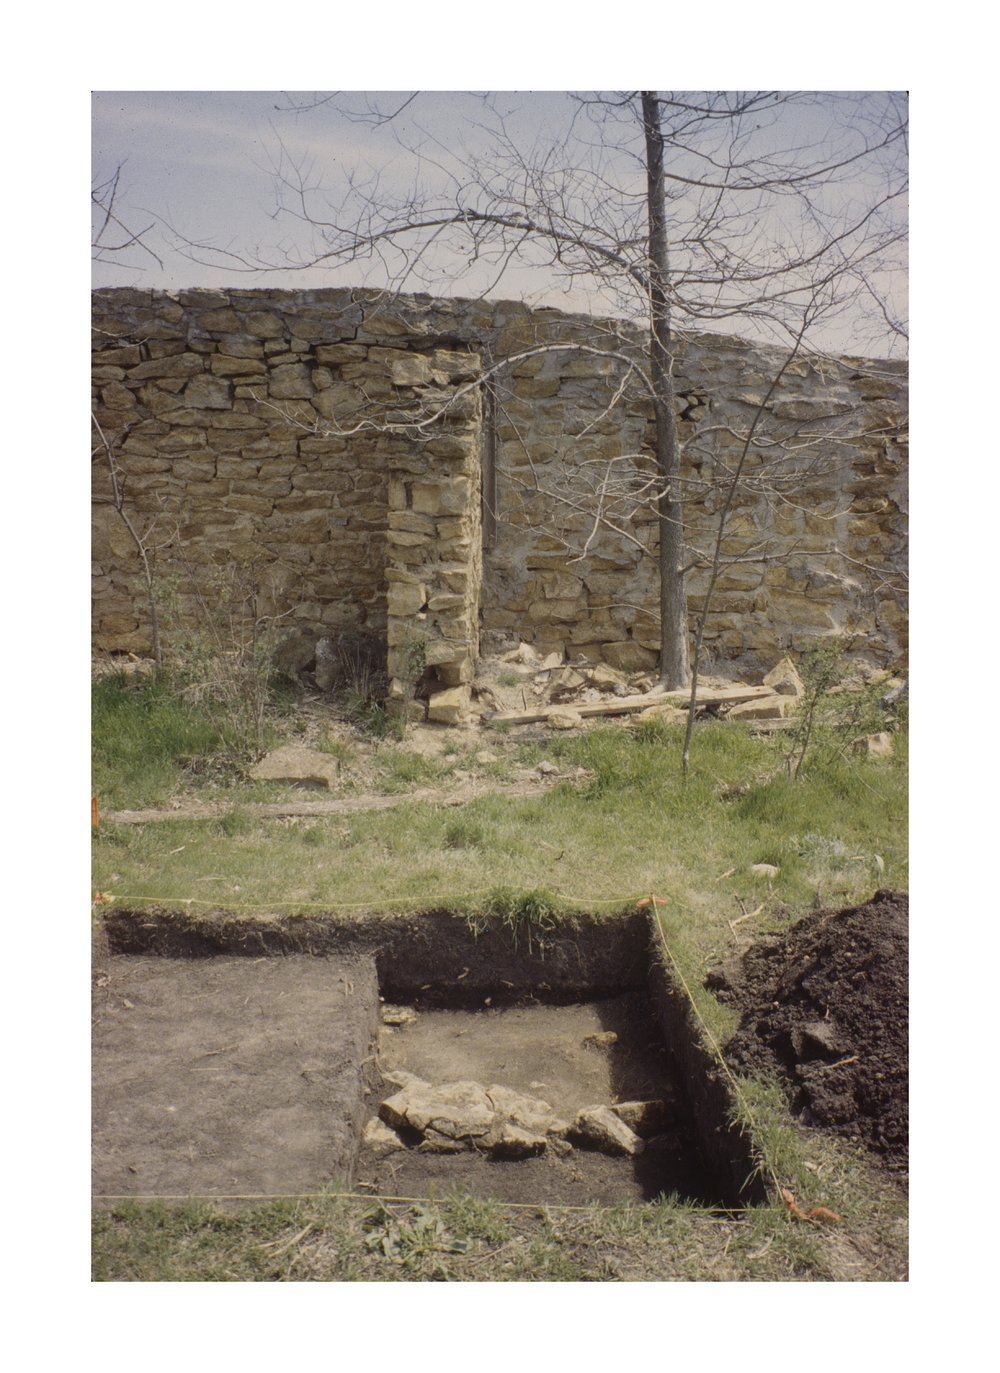 1995 Excavations at the Havana Stage Station, 14OS1301 - 4